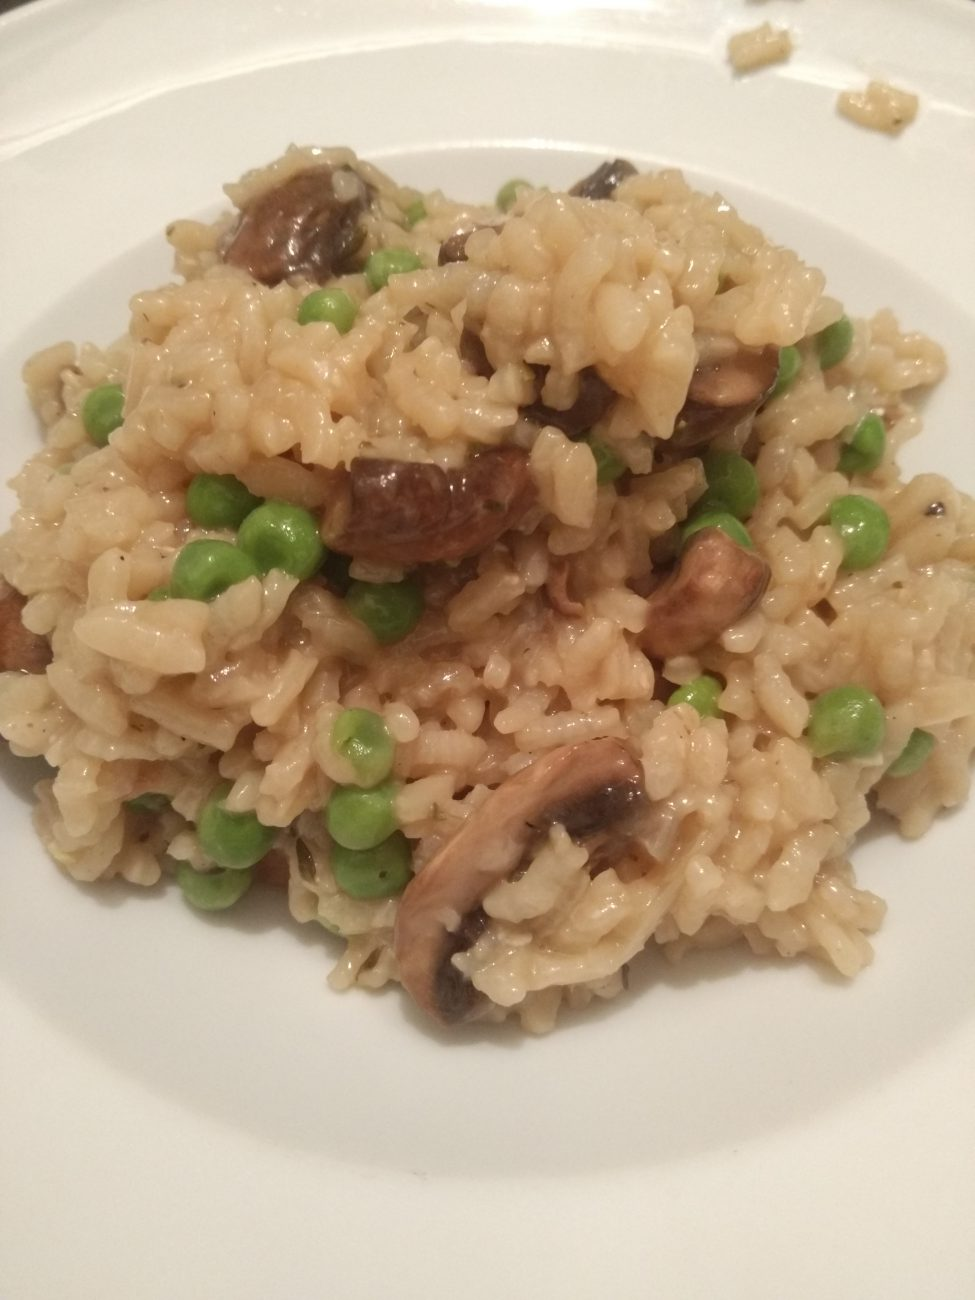 Oven baked Mushroom Peas Risotto